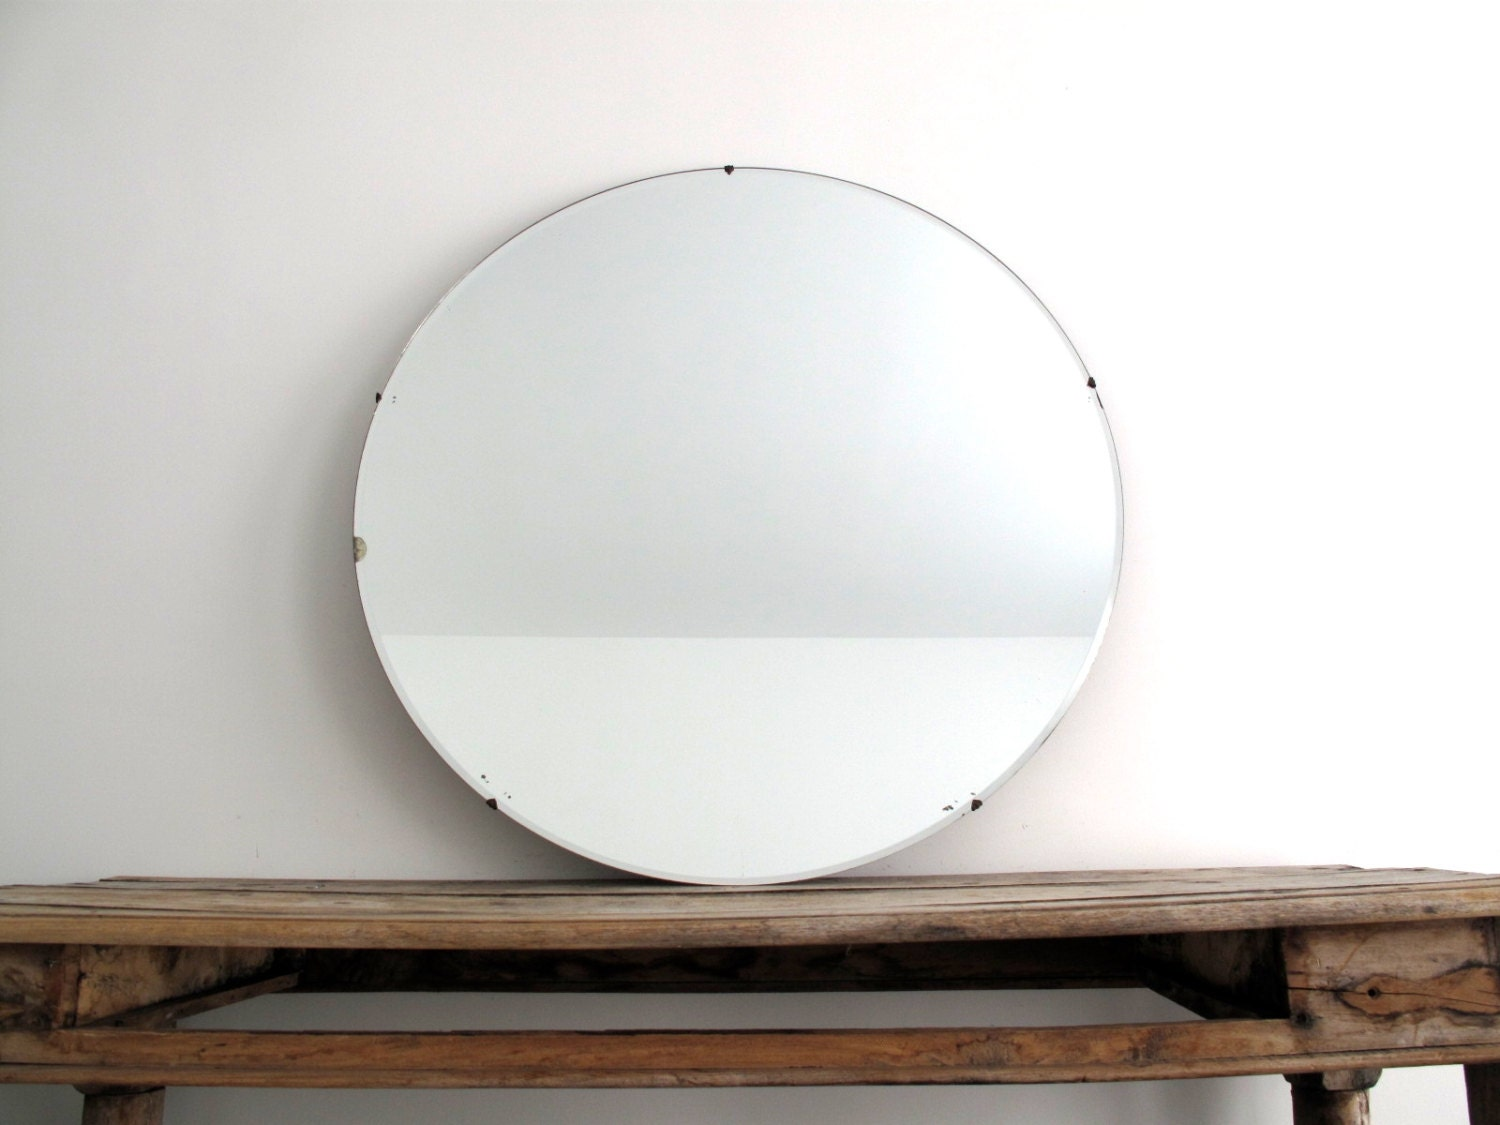 Vintage large round wall mirror 30 frameless by for Round mirror